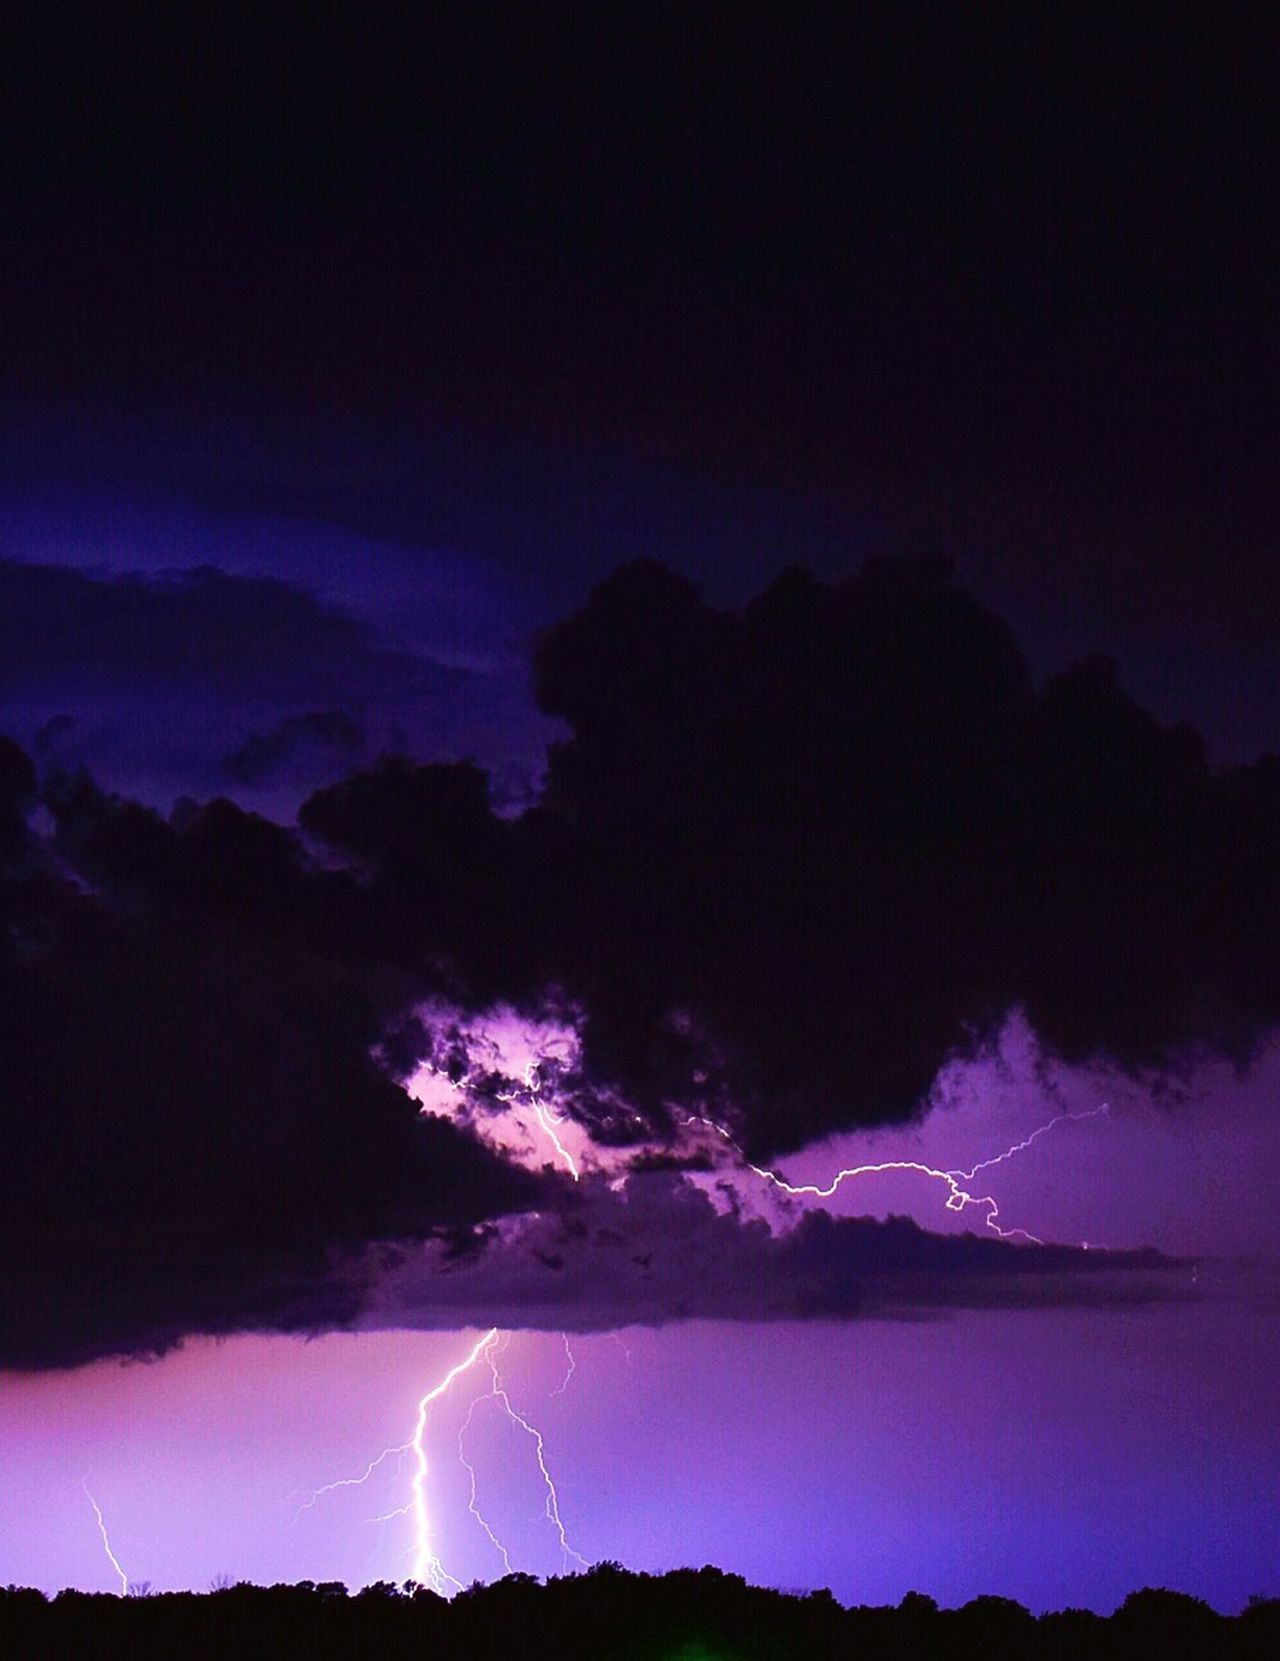 An edit done on the iPhone 6S Plus Lightning Power In Nature Forked Lightning Thunderstorm Night Weather Storm Dramatic Sky Sky Storm Cloud Scenics Nature Beauty In Nature No People Cloud - Sky Electricity  Illuminated EyeEmNewHere The Great Outdoors - 2017 EyeEm Awards EyeEmNewHere